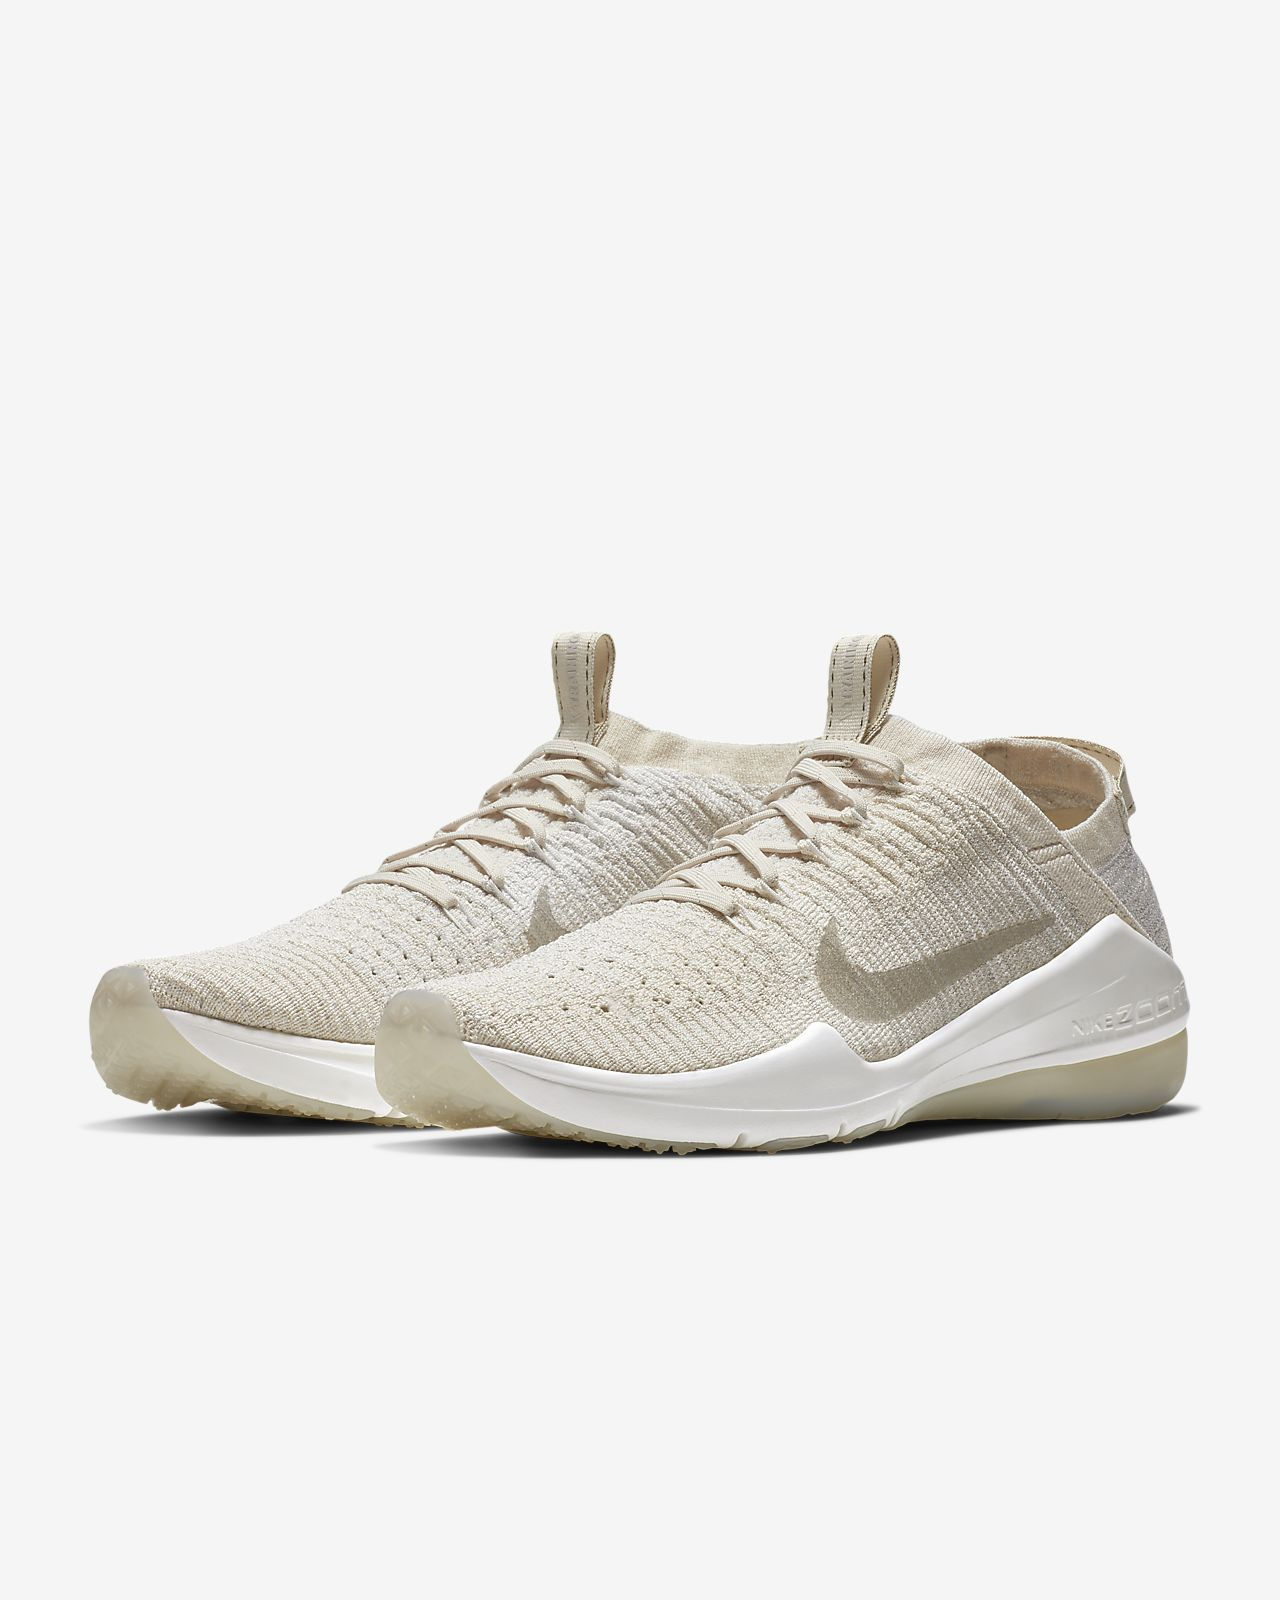 20925be500a Nike Air Zoom Fearless Flyknit 2 Champagne Women s Training Shoe ...